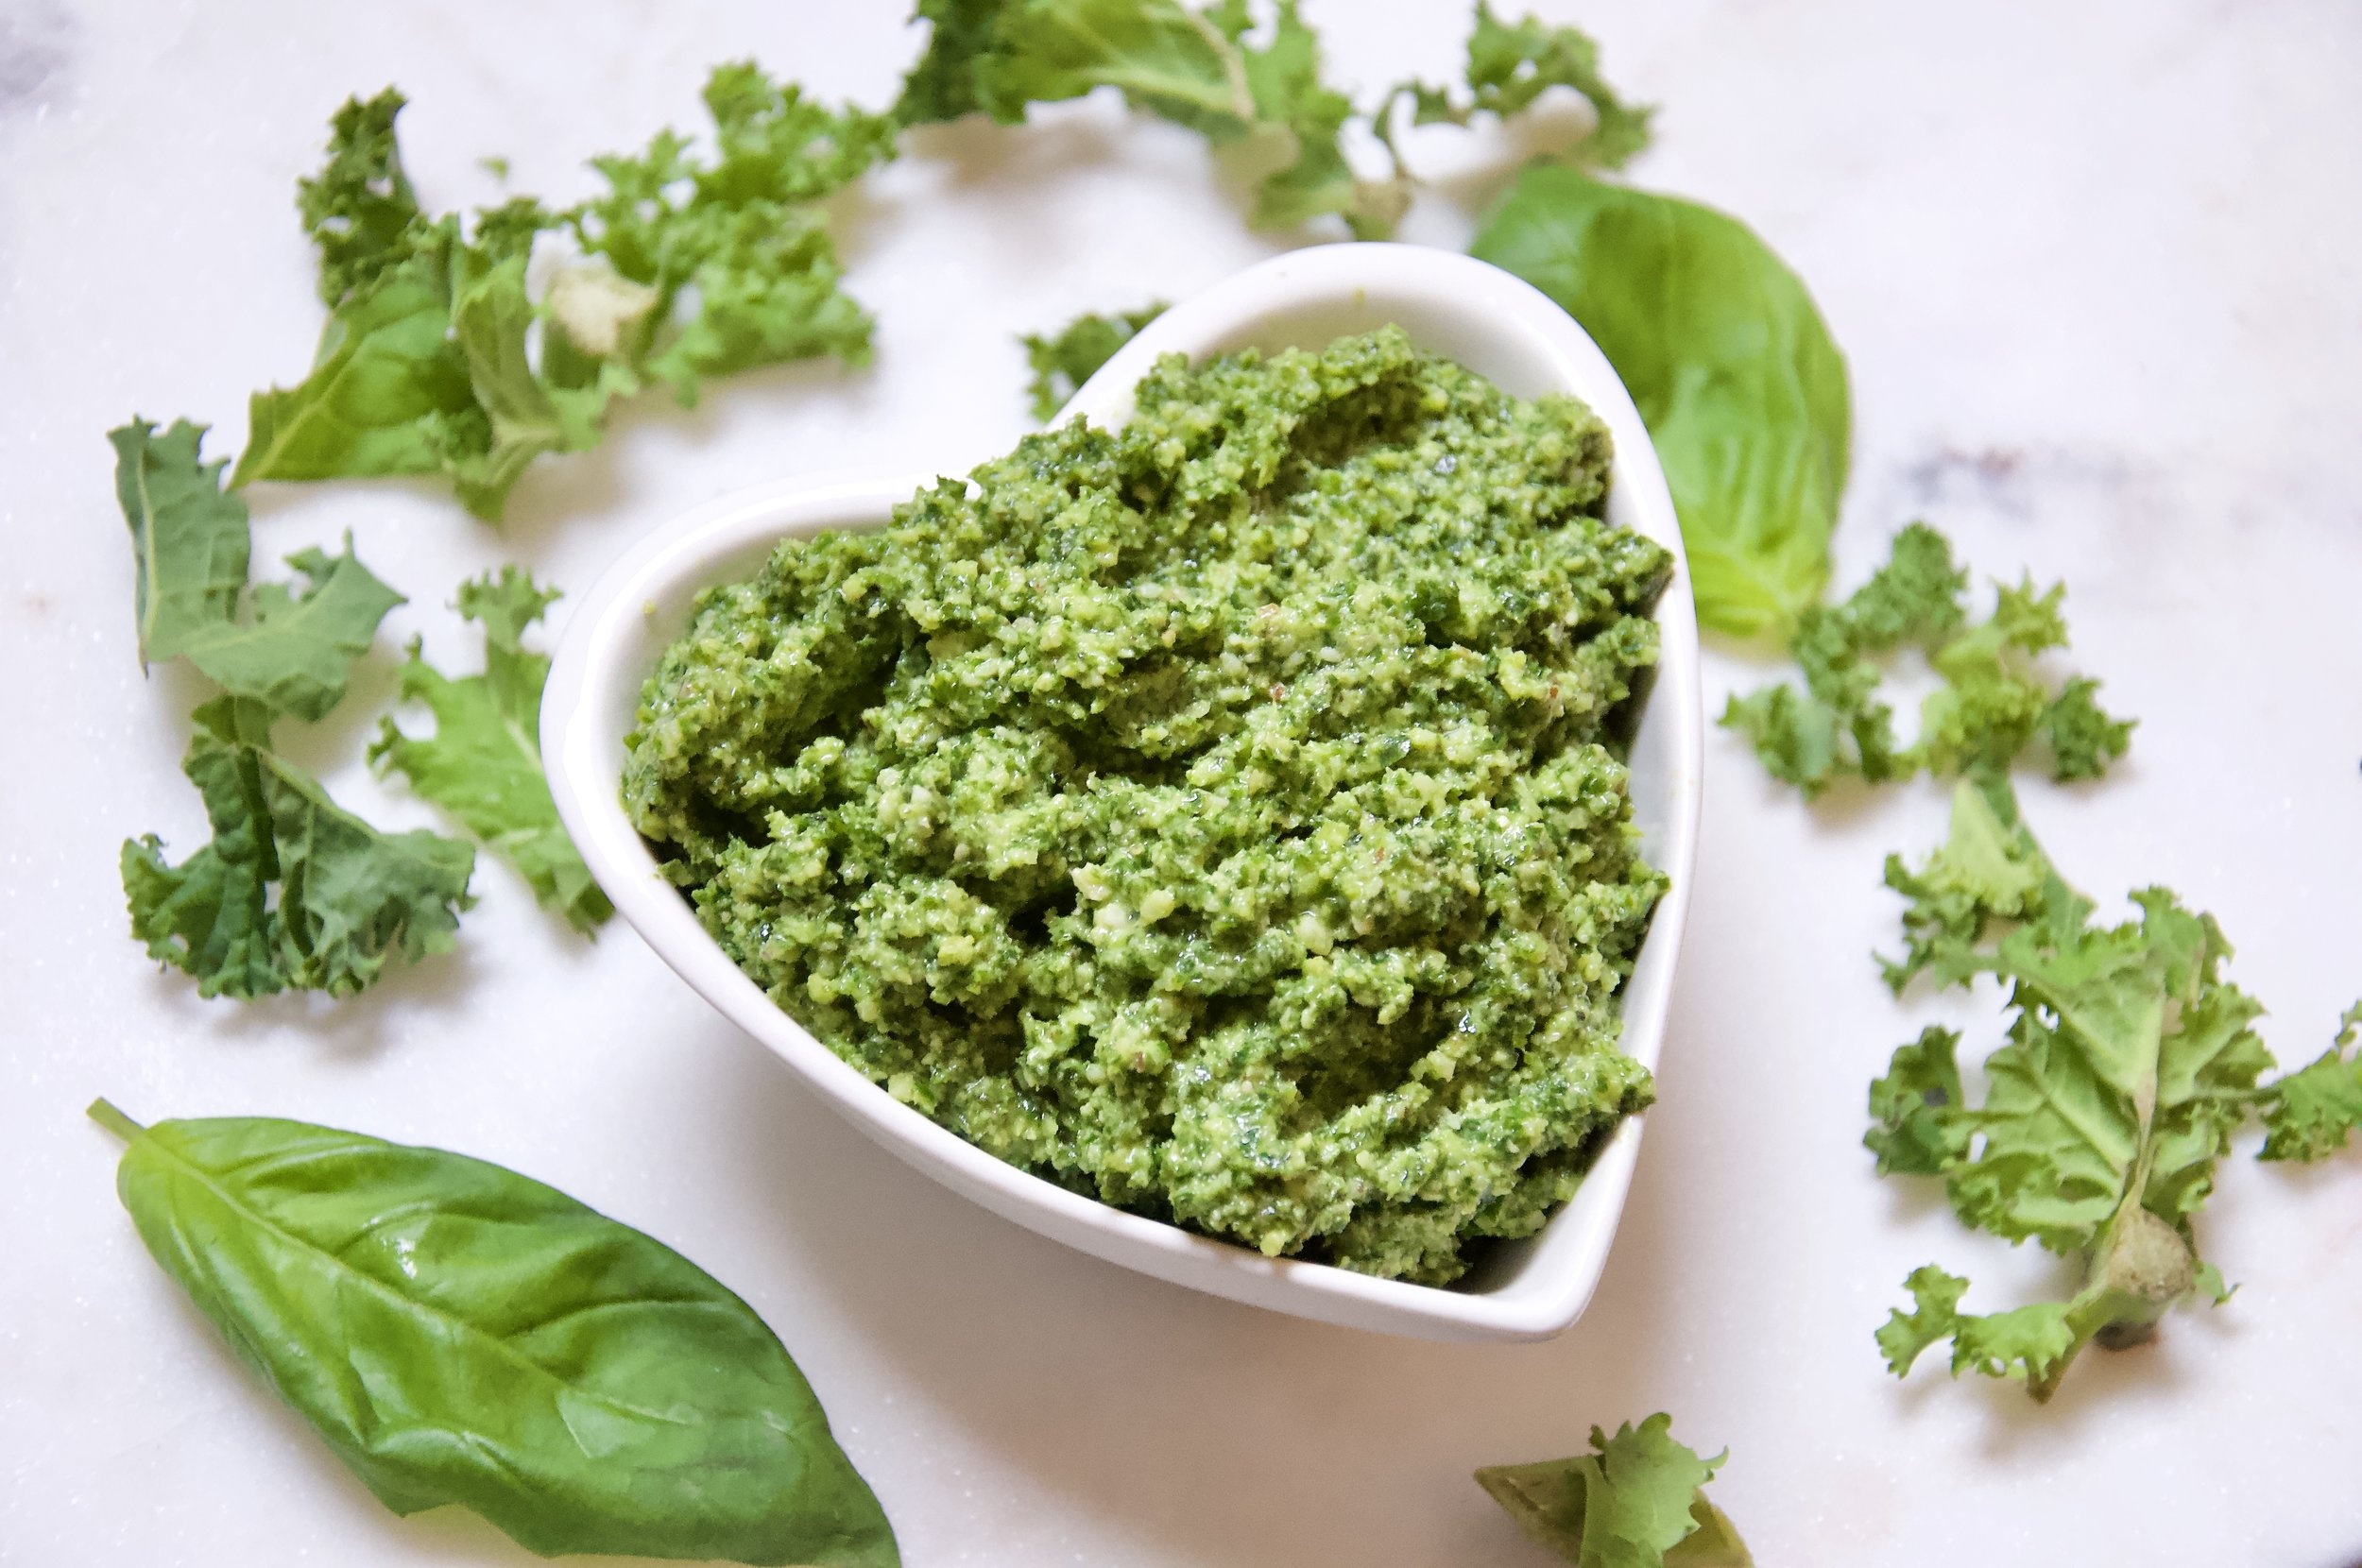 Emma's delicious Kale & Brazil Nut Pesto - enjoy it with pasta topped with some roasted peppers and tomatoes, or served with chicken, fish, in a panini or on potatoes.